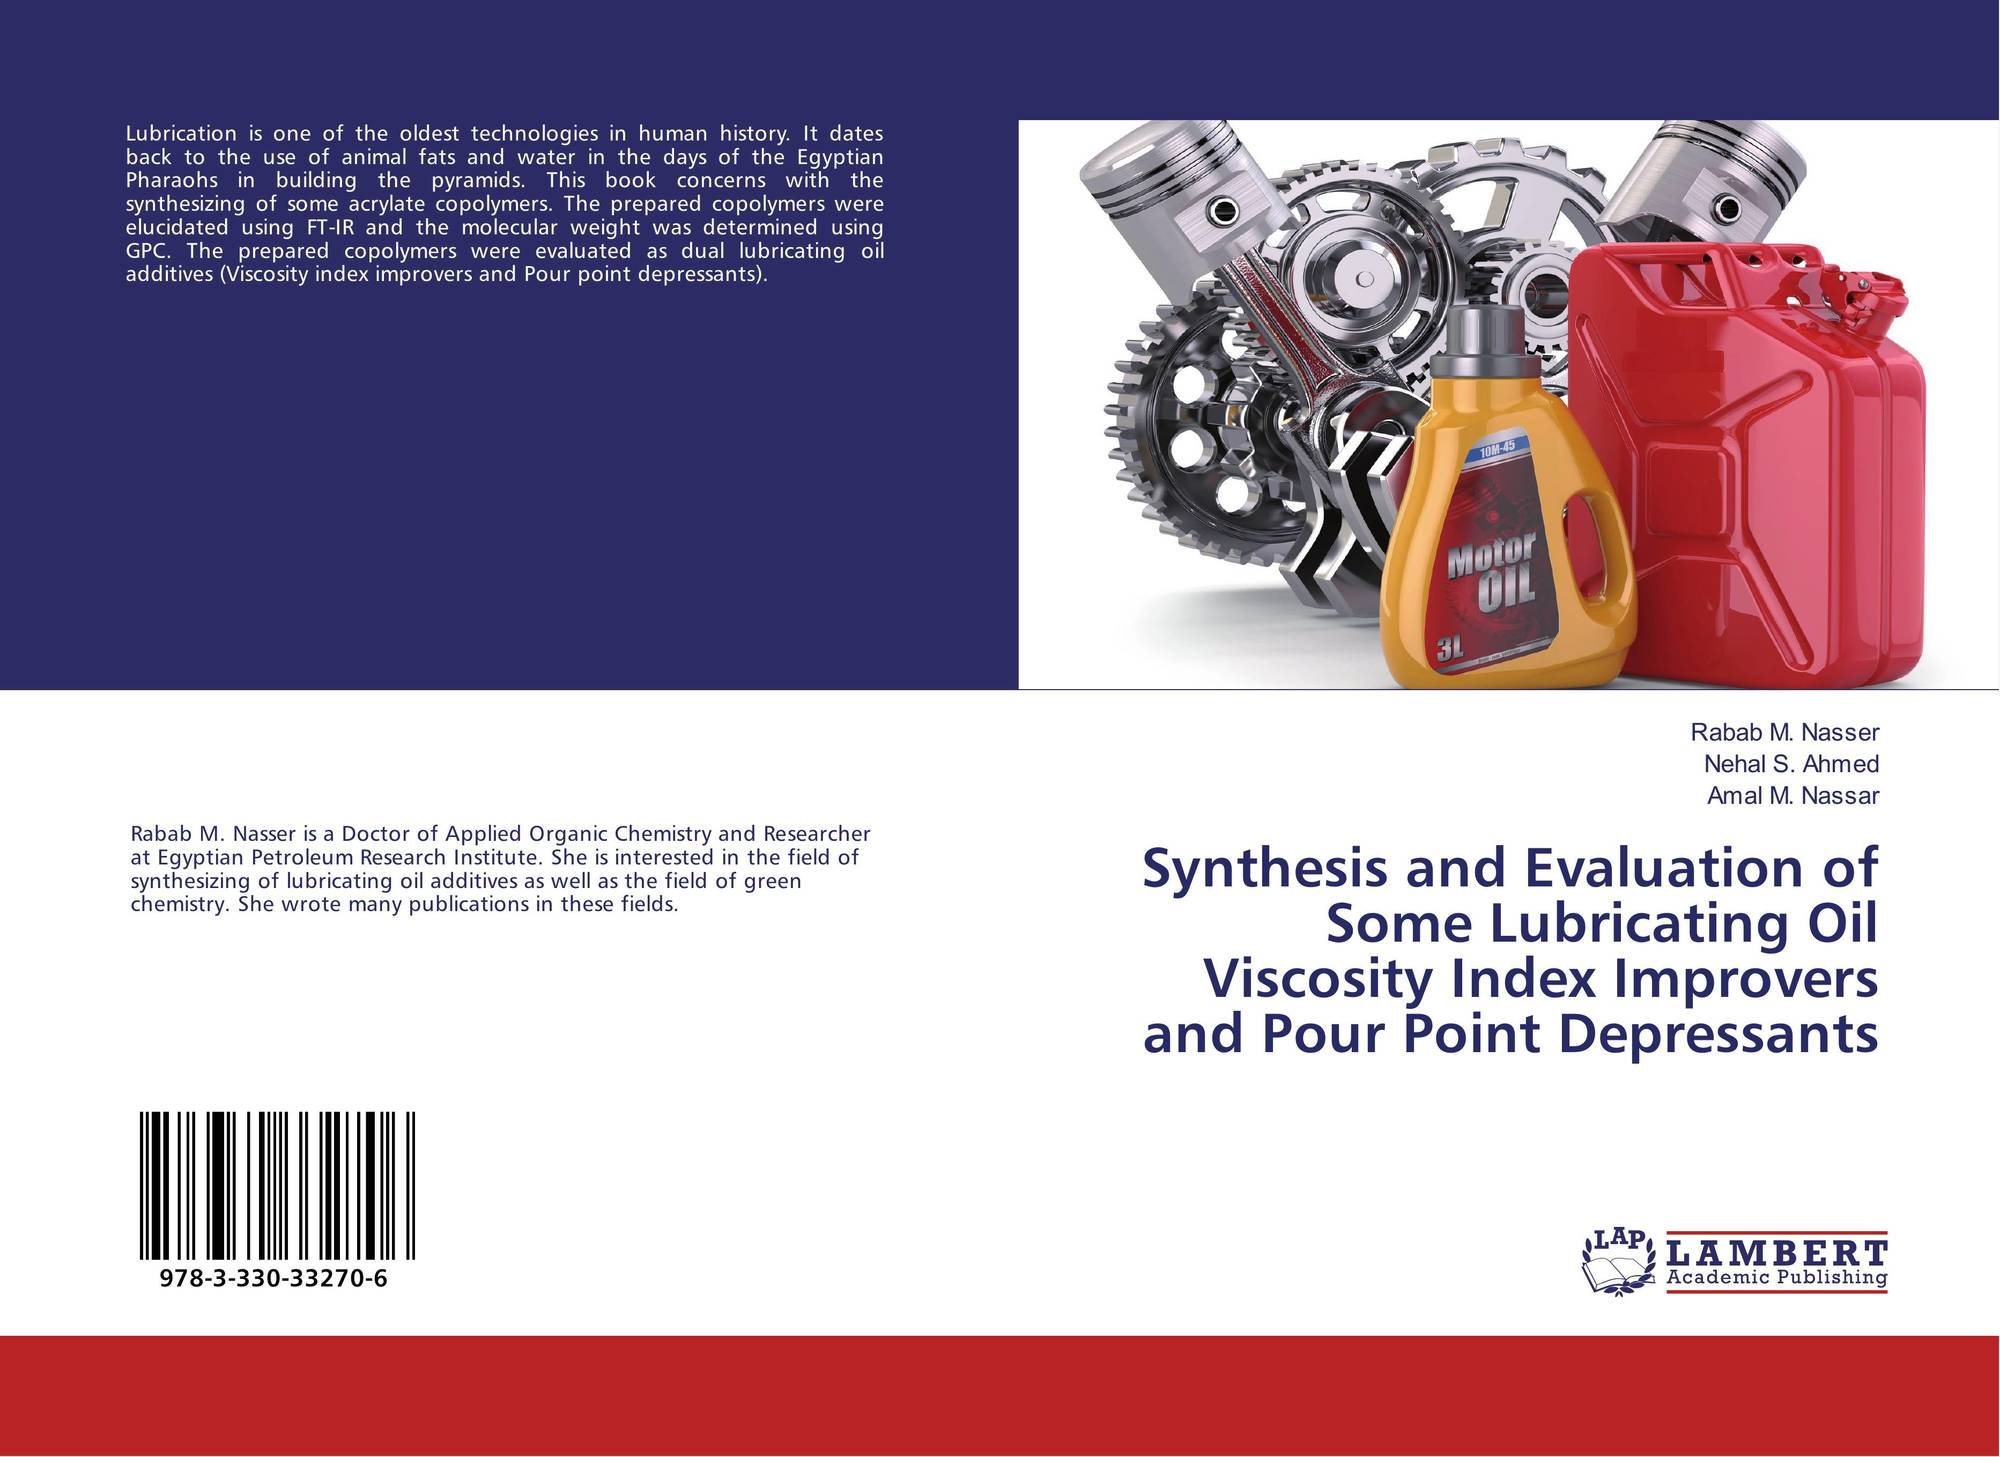 Synthesis and Evaluation of Some Lubricating Oil Viscosity